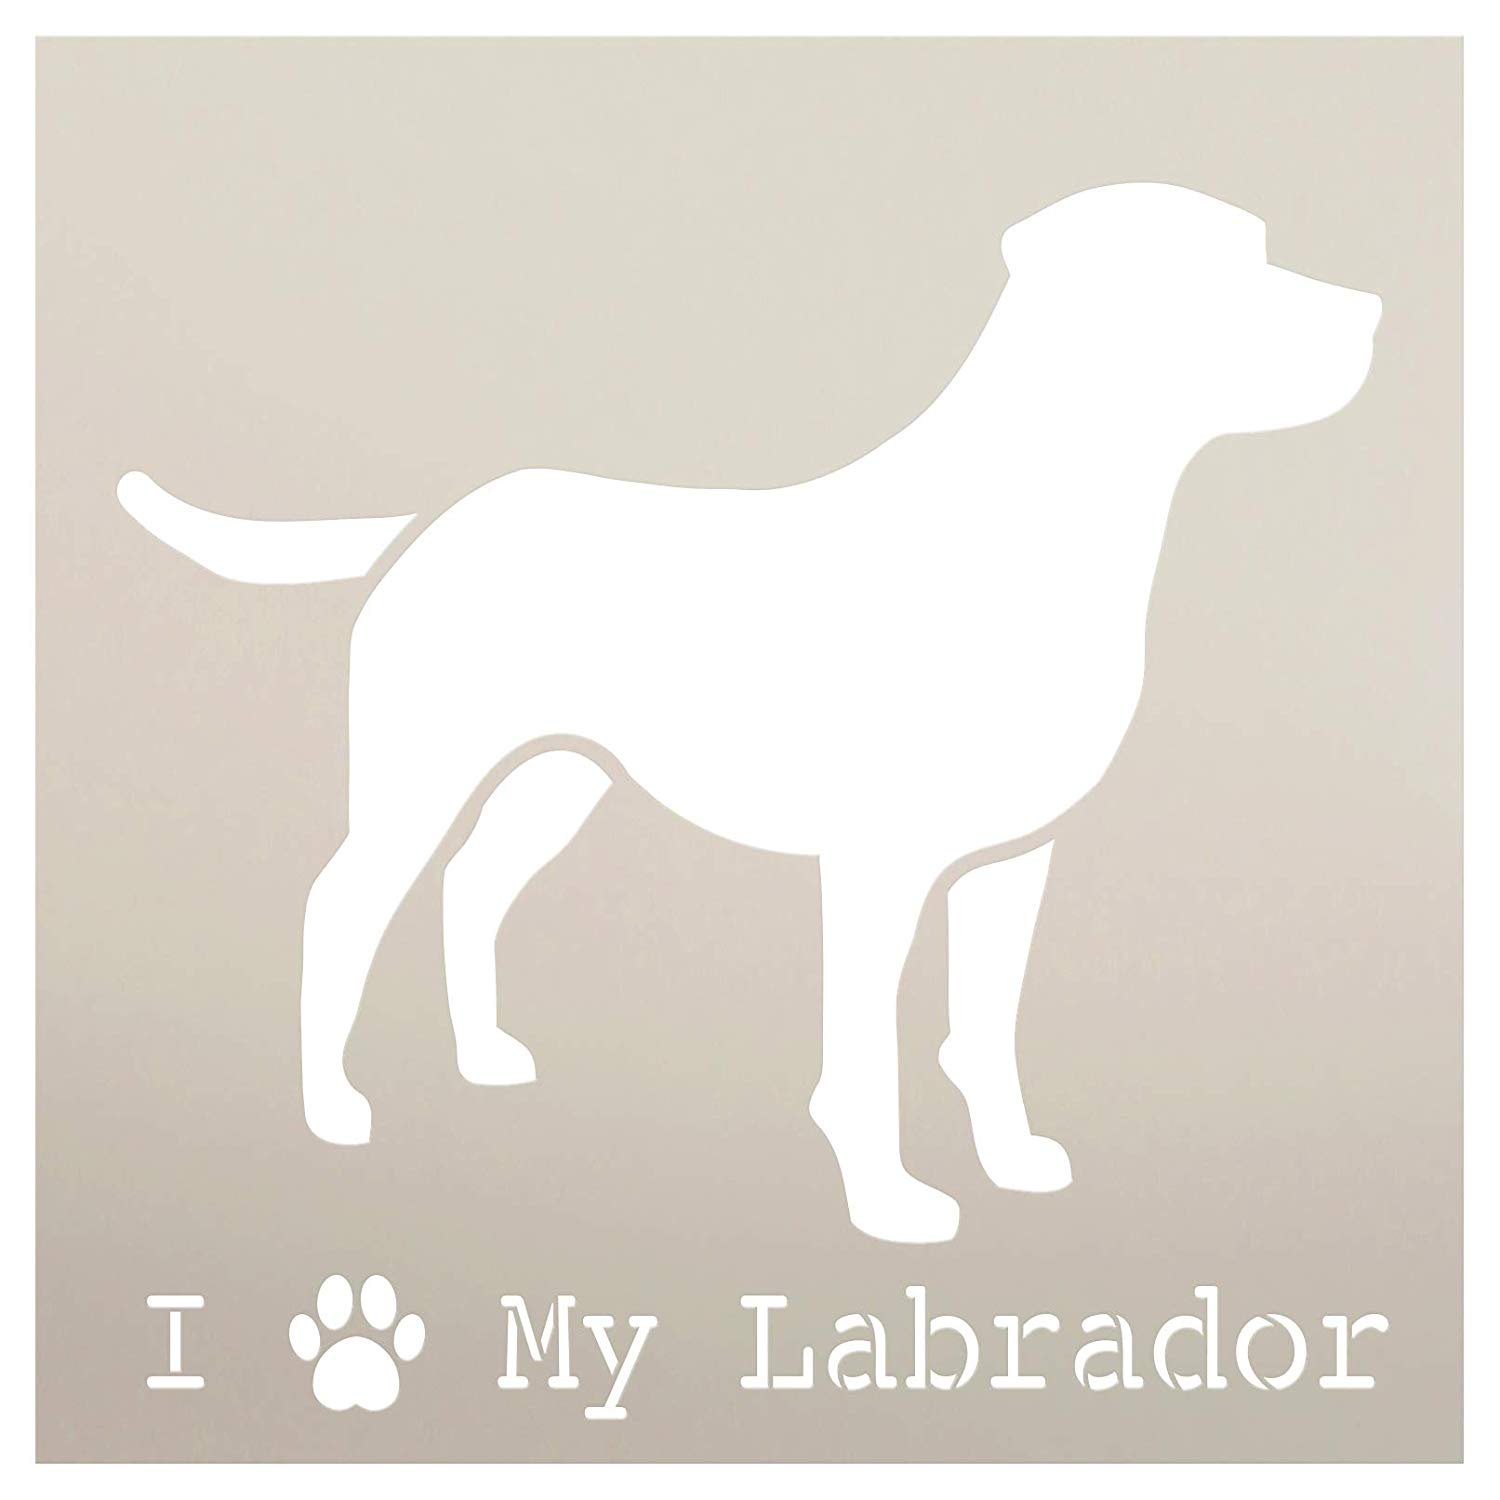 I Heart My Labrador with Paw Print Stencil by StudioR12 | Reusable Mylar Template | Paint Wood Sign | Craft Dog Lover Gift - Family - Friends | DIY Pet Home Decor | Select Size